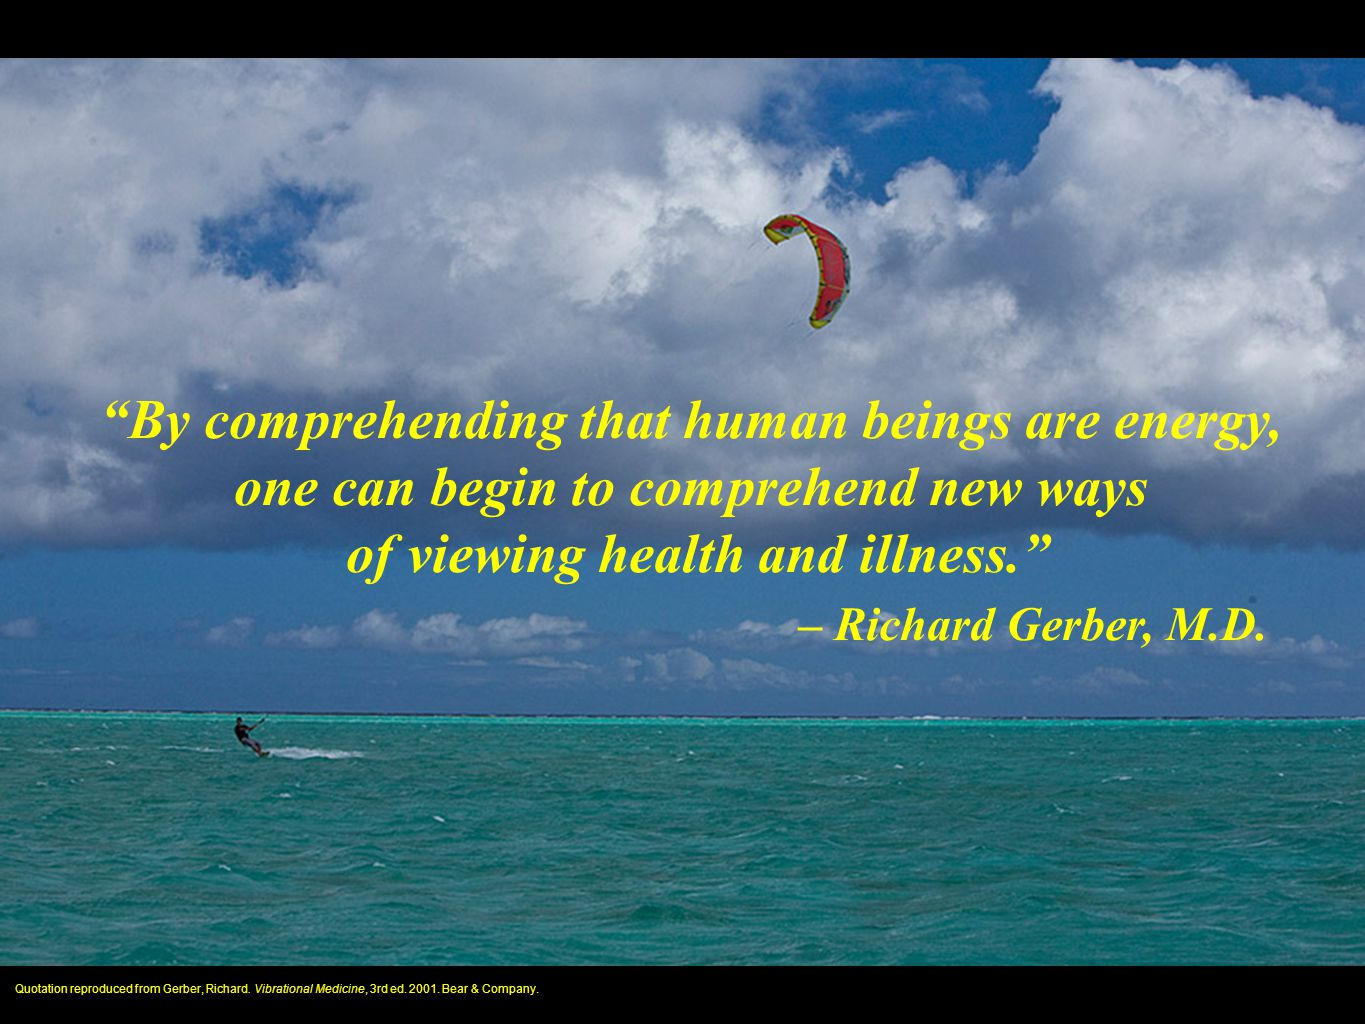 By comprehending that human beings are energy, one can begin to comprehend new ways of viewing health and illness. – Richard Gerber, M.D.